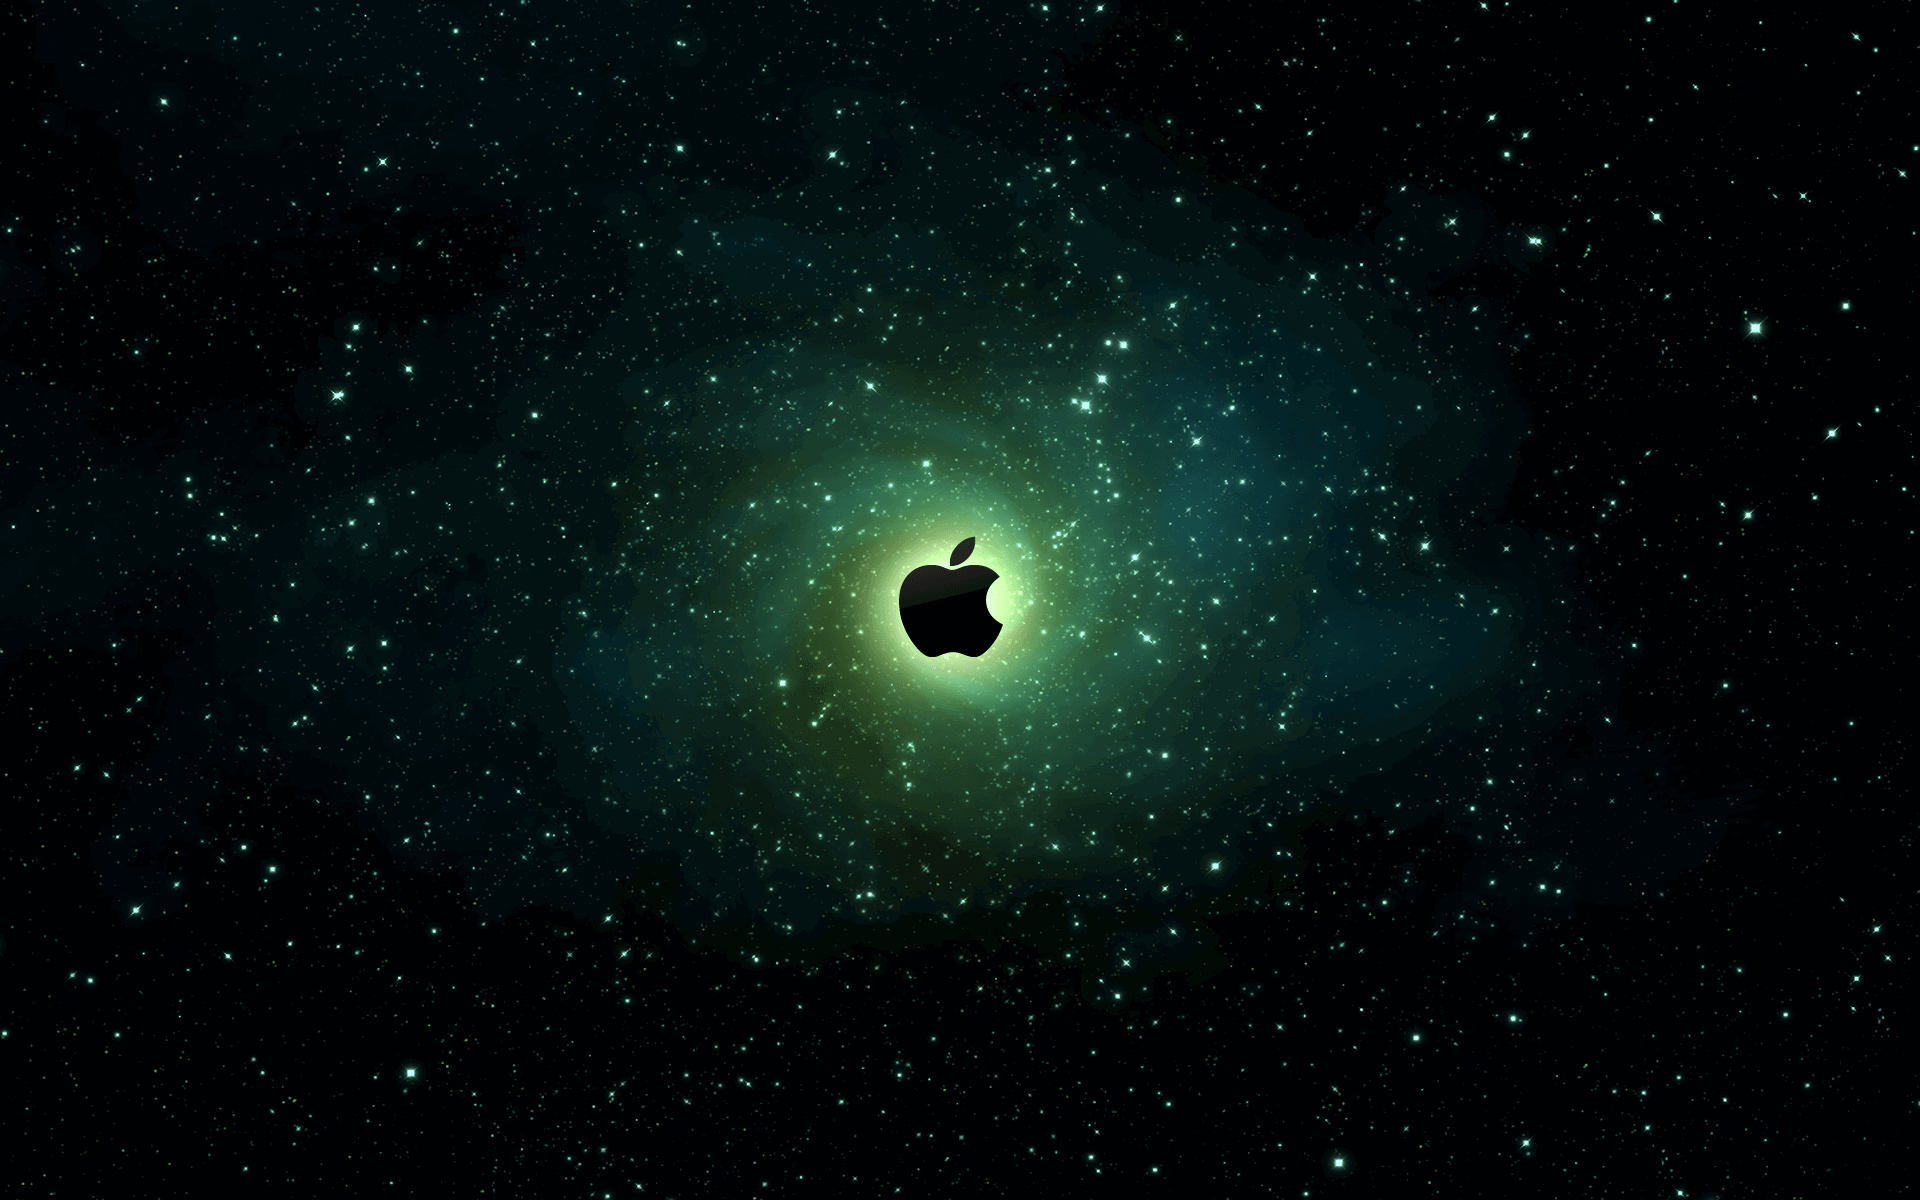 Macbook Pro Wallpaper 4k Space Trick Di 2020